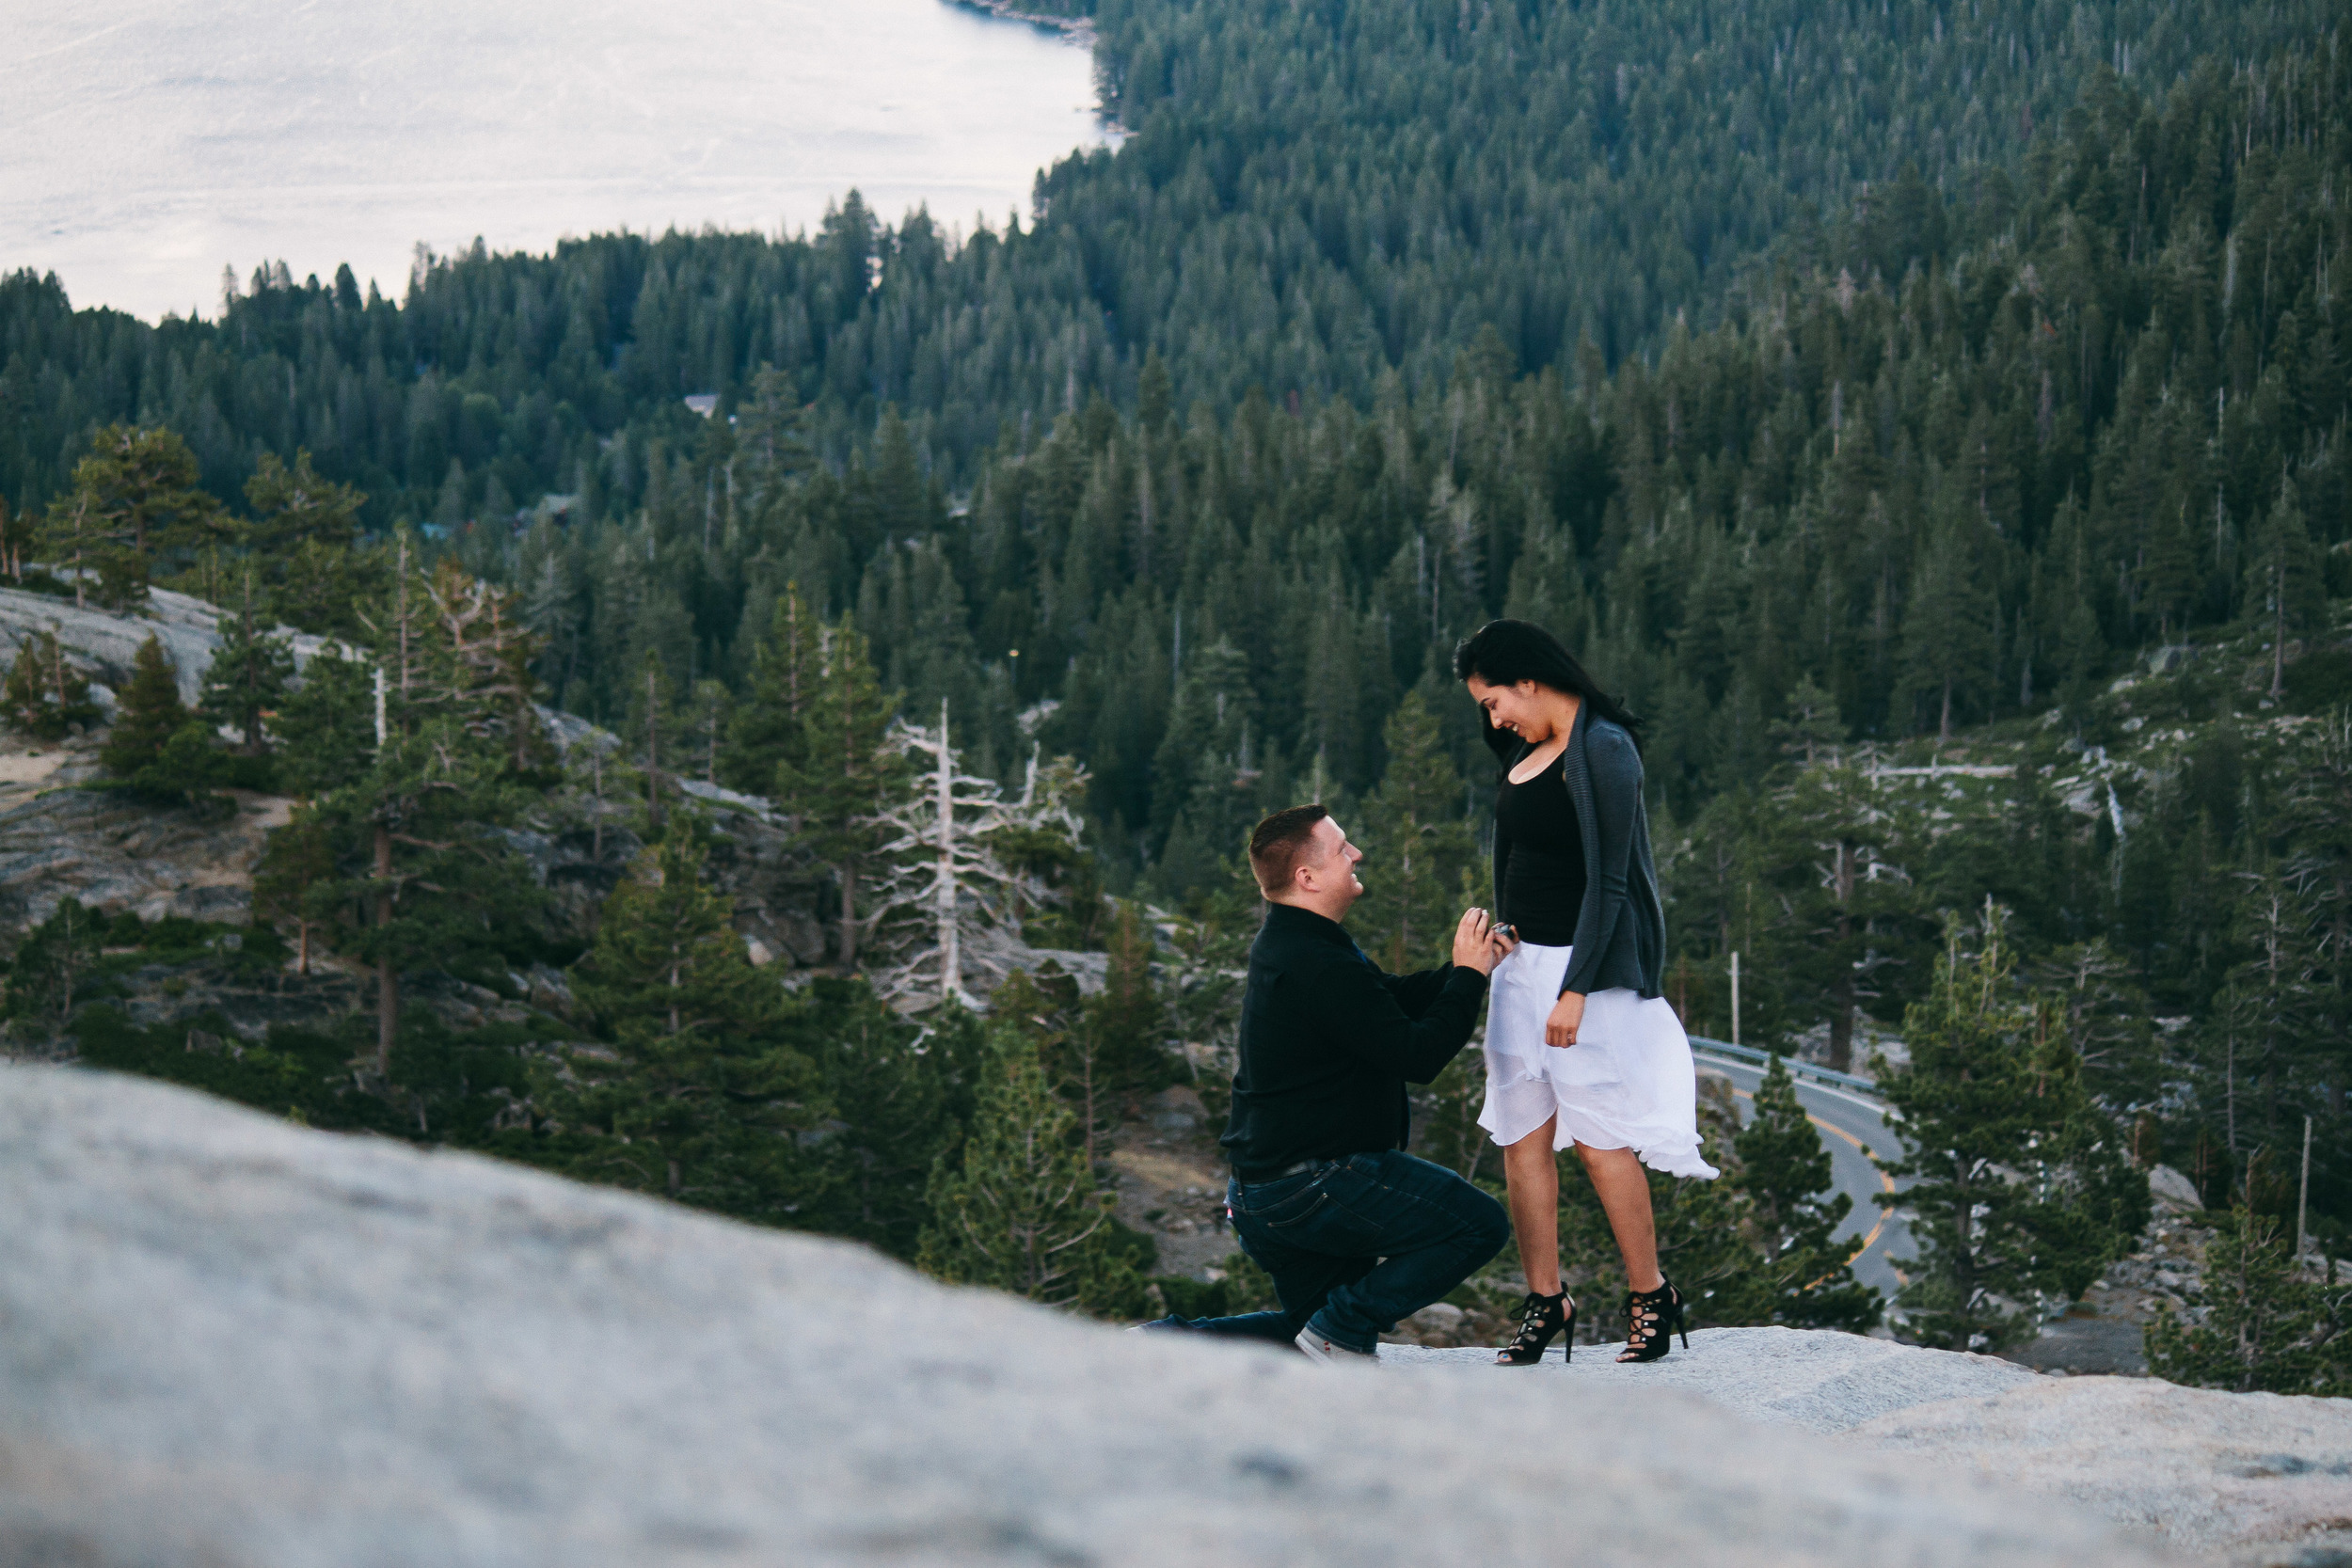 Clint & Veronica's Proposal - Corrie Mick Photography-14.jpg